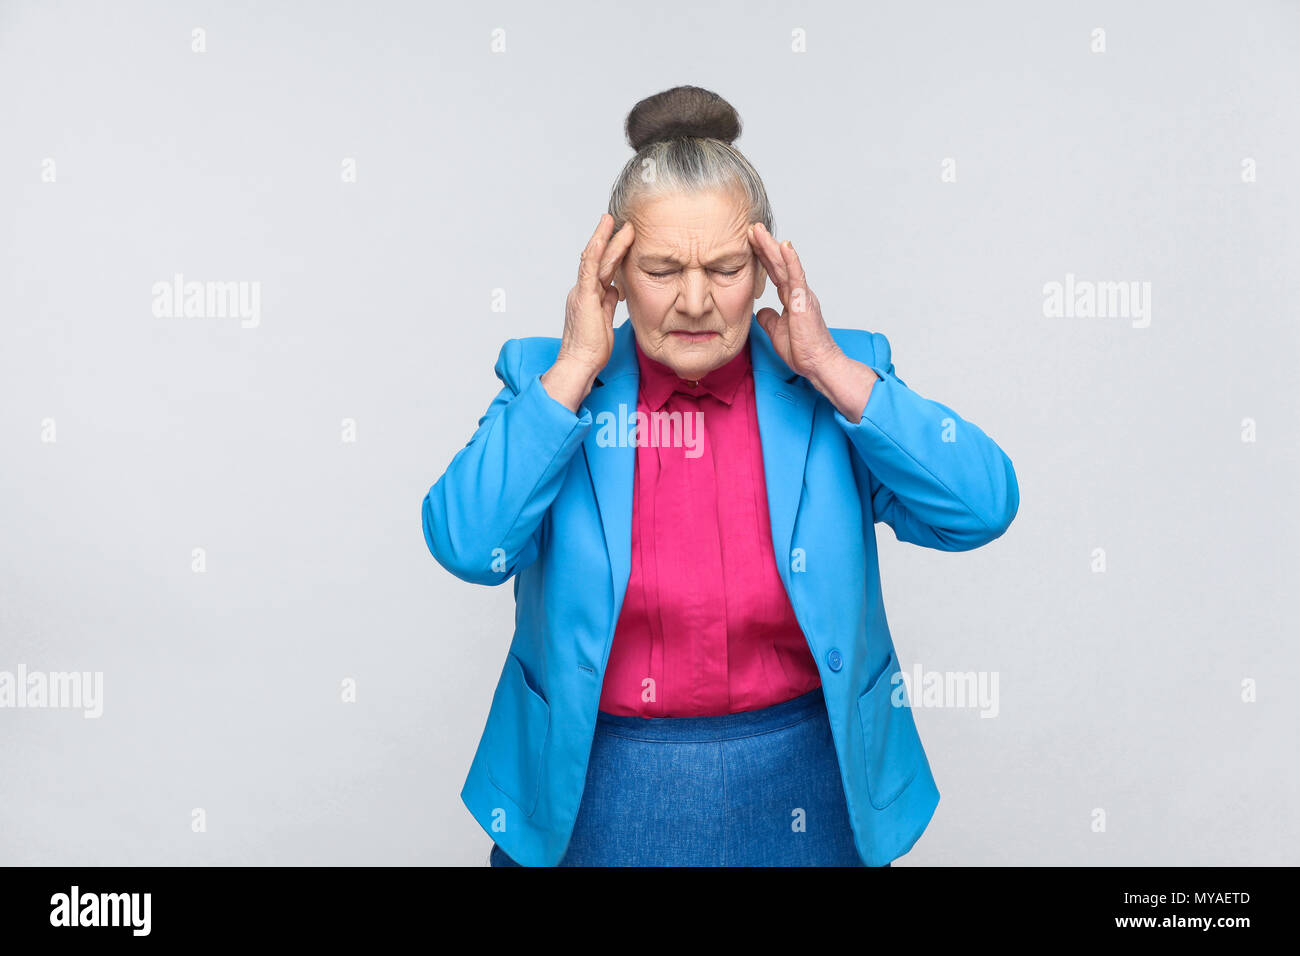 Aged woman have migraine and headache pain. Portrai of expressive grandmother with light blue suit and pink shirt standing with collected bun gray hai - Stock Image